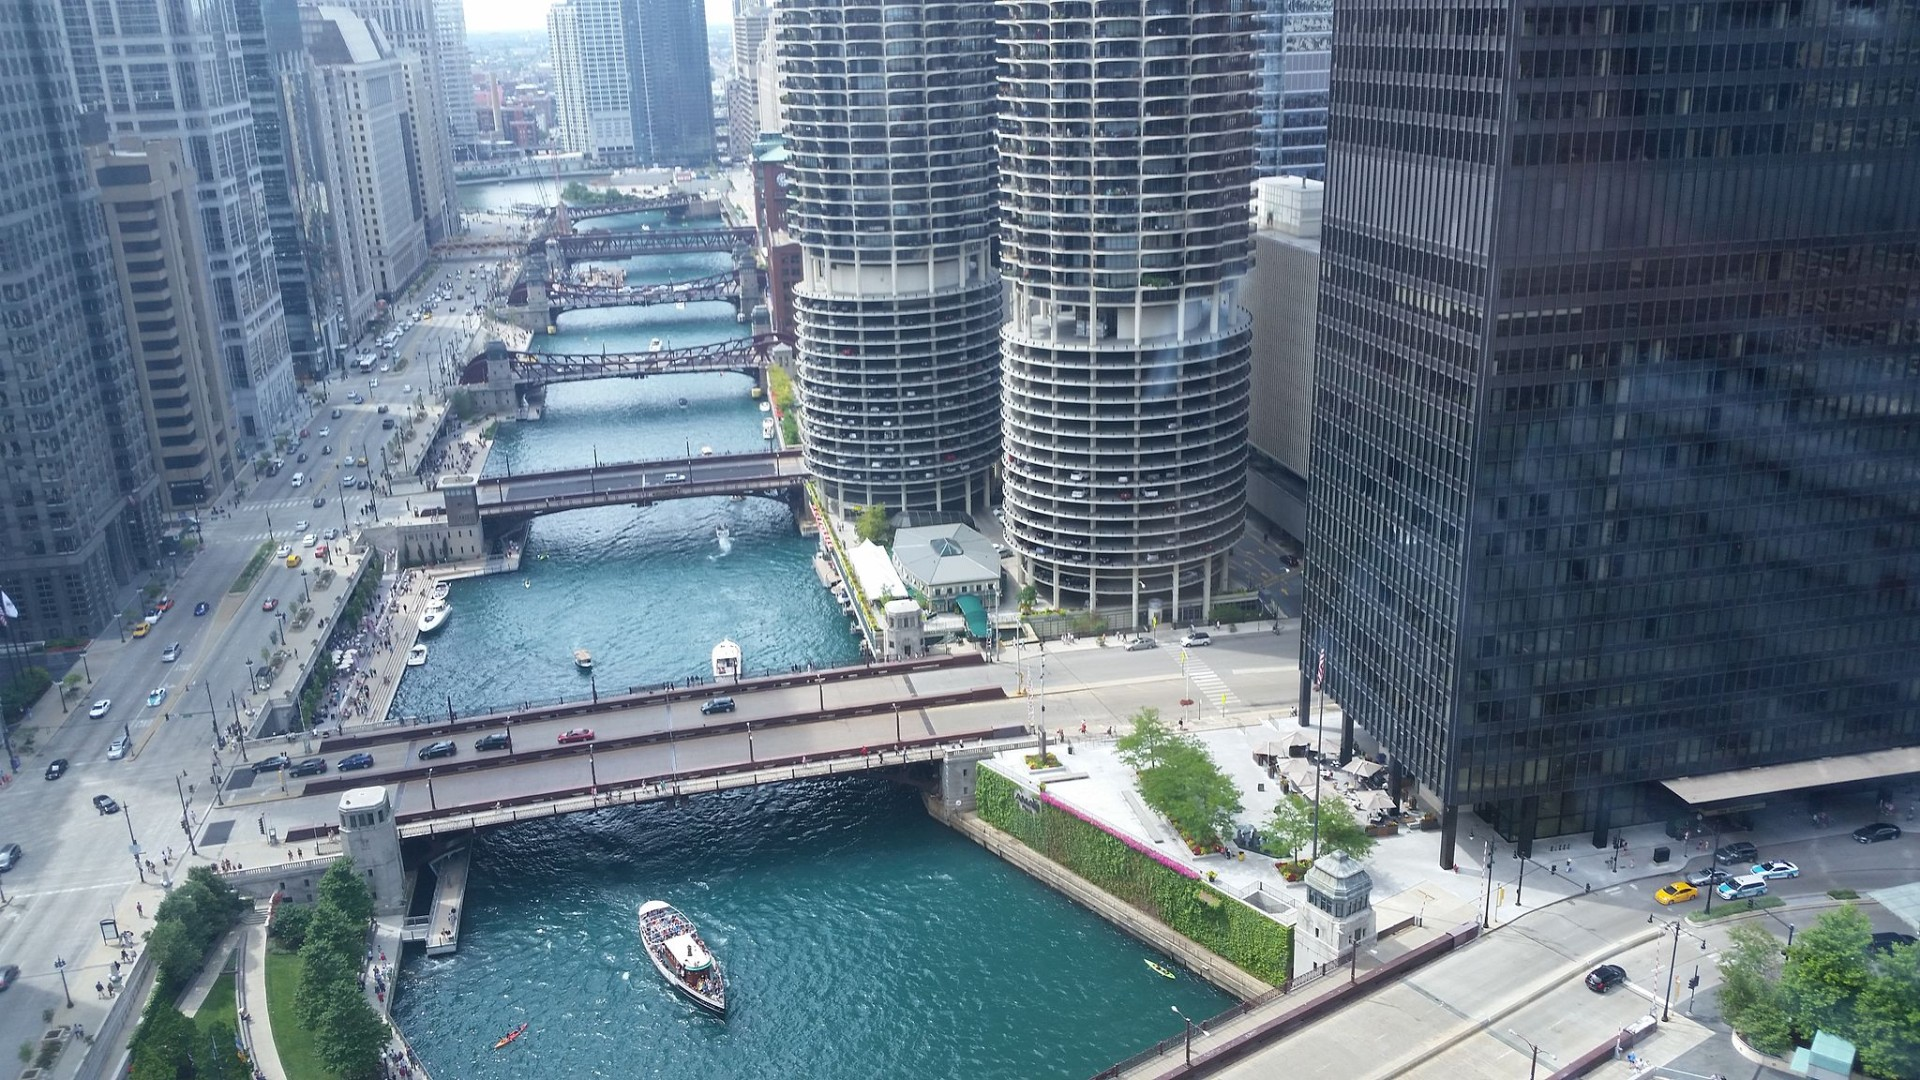 IB Environmental Systems & Societies: The Chicago River: Life in the Anthropocene